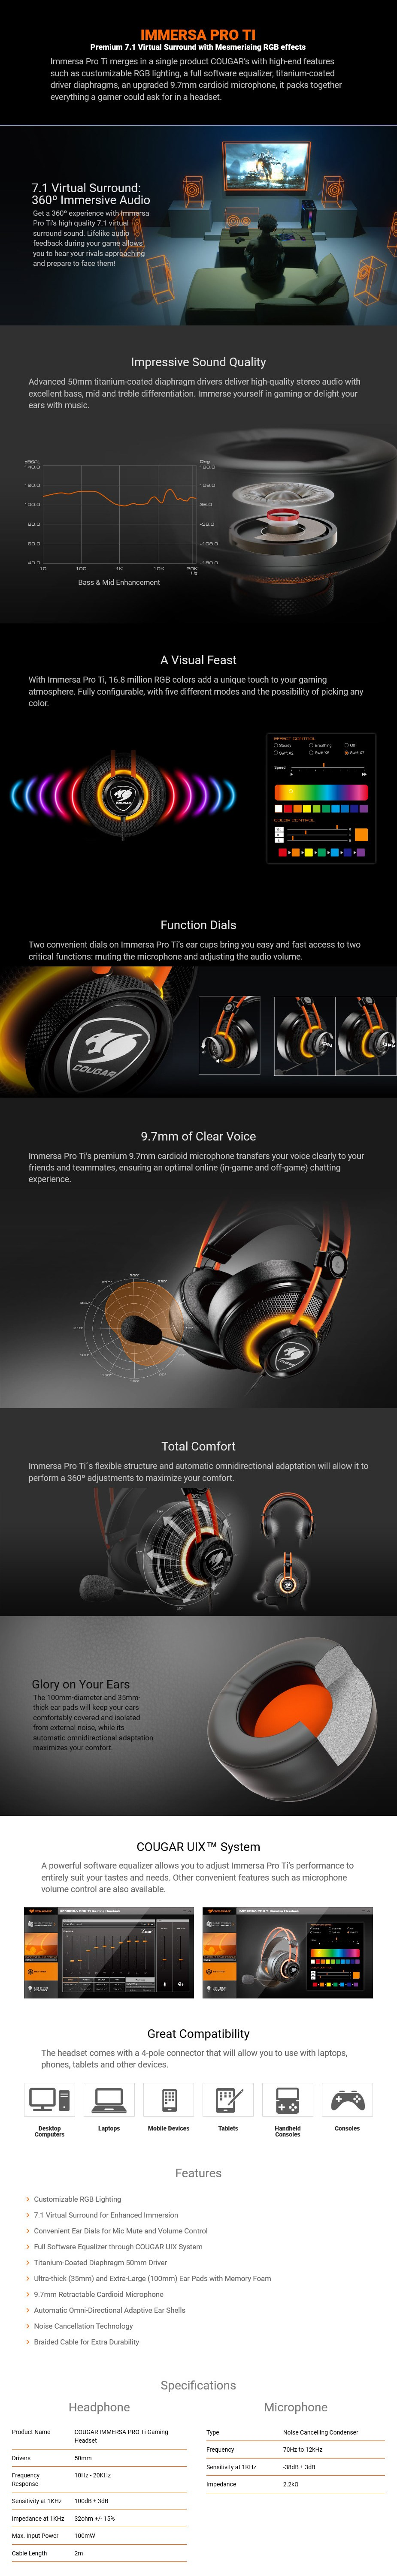 Cougar Immersa-Pro Ti Virtual 7.1 RGB Gaming Headset - Desktop Overview 1